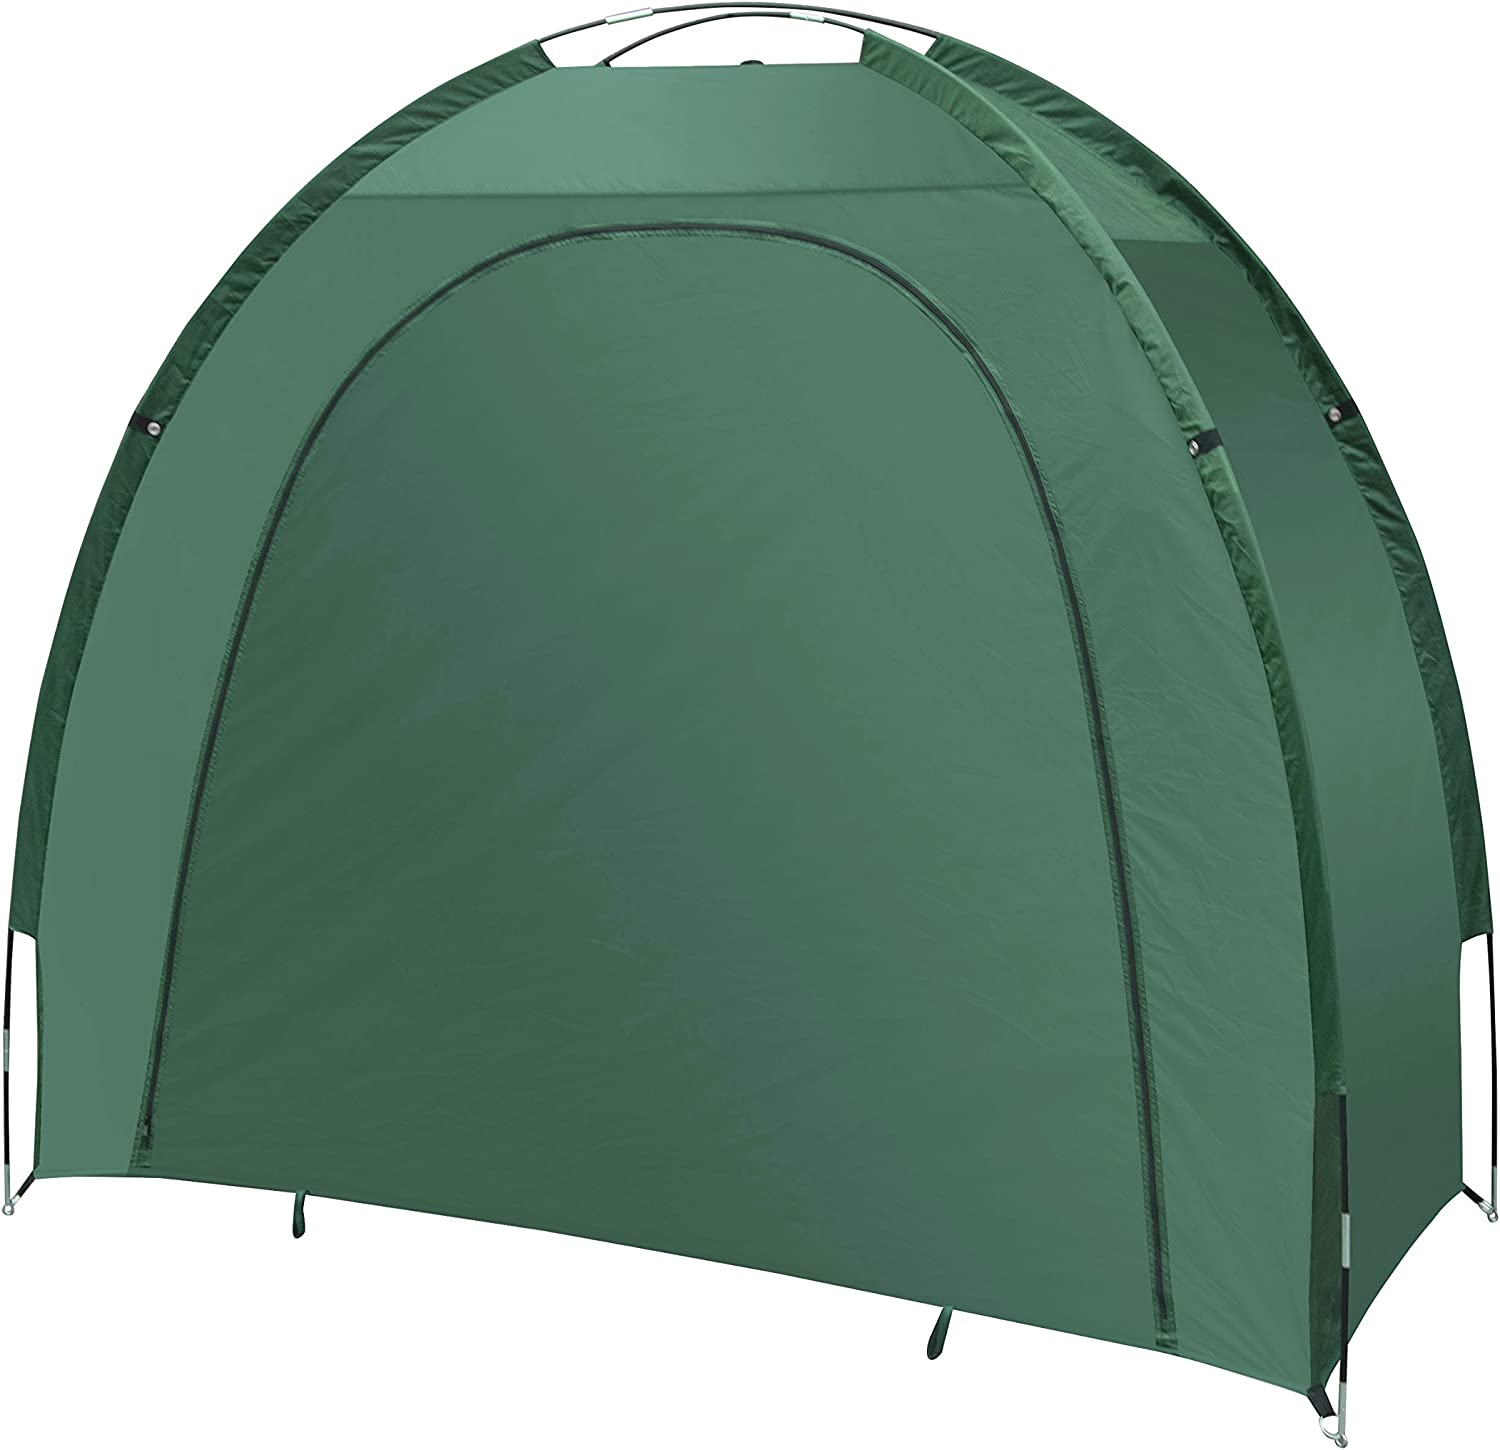 ALEKO BS70GR Portable Pop Up Bike Tent Bicycle Storage Shed Weather Resistant Protection Outdoor with Carrying Case 82 X 70 X 34 Inches Green